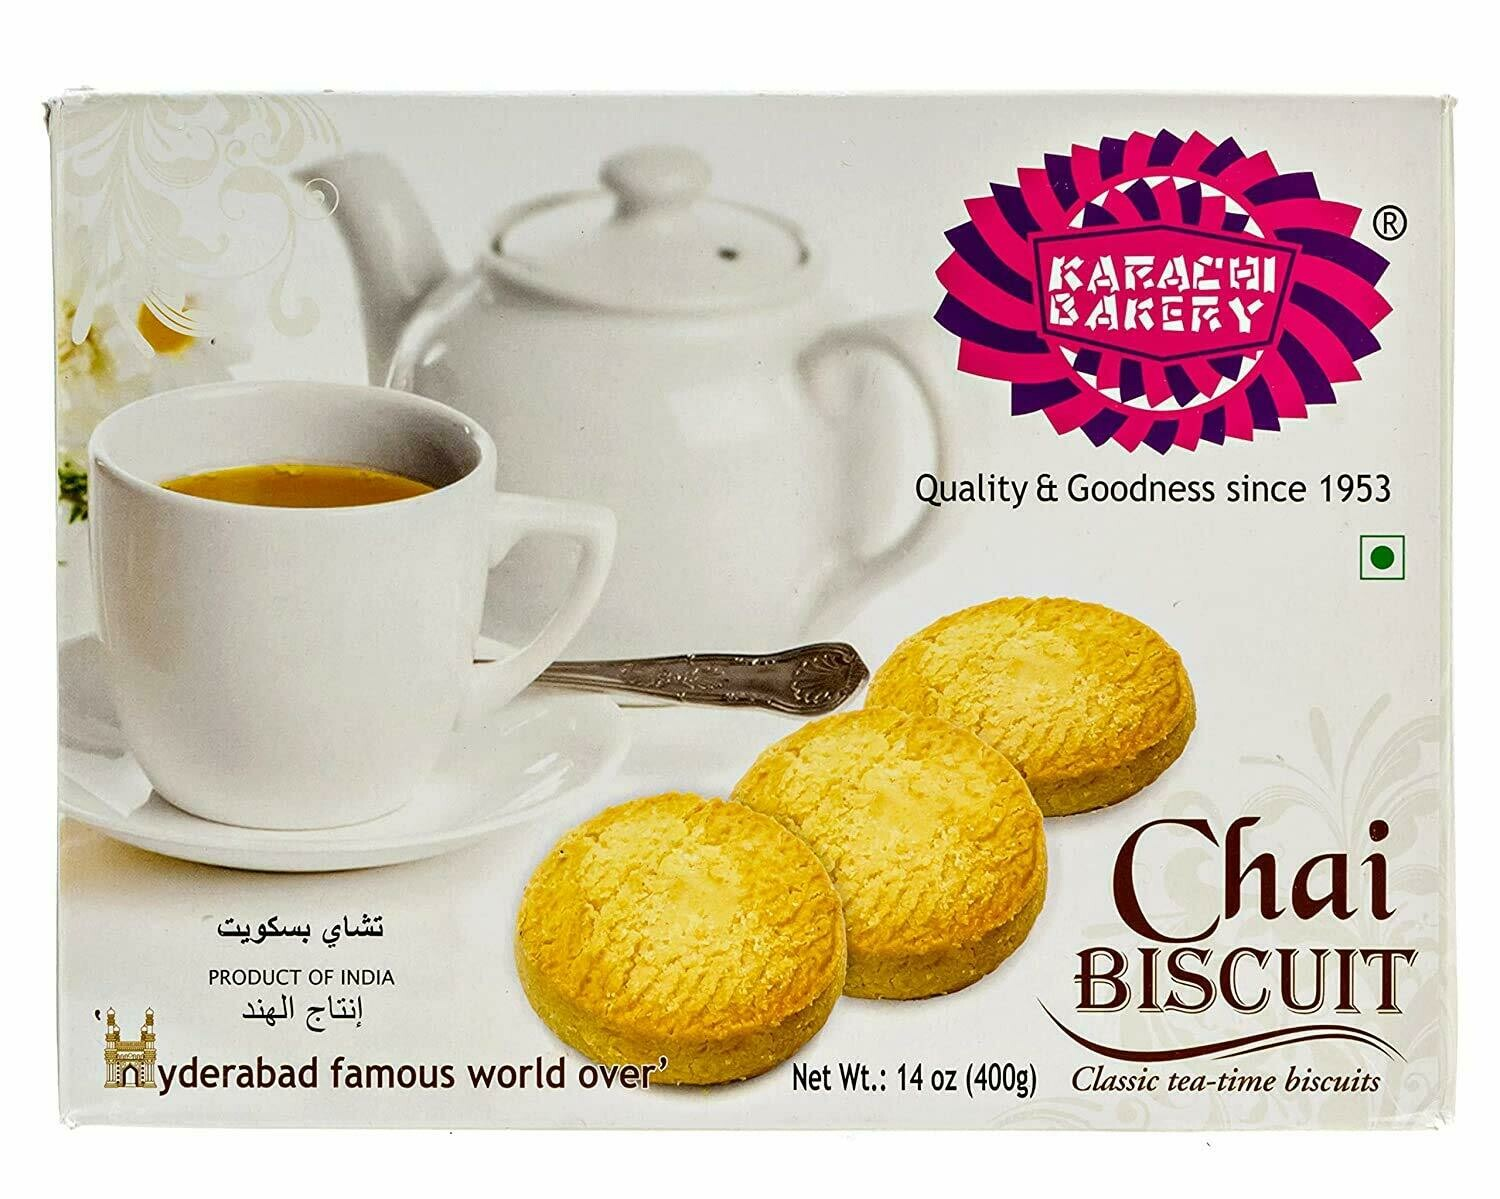 KARACHI BAKERY CHAI BISCUITS 400GM